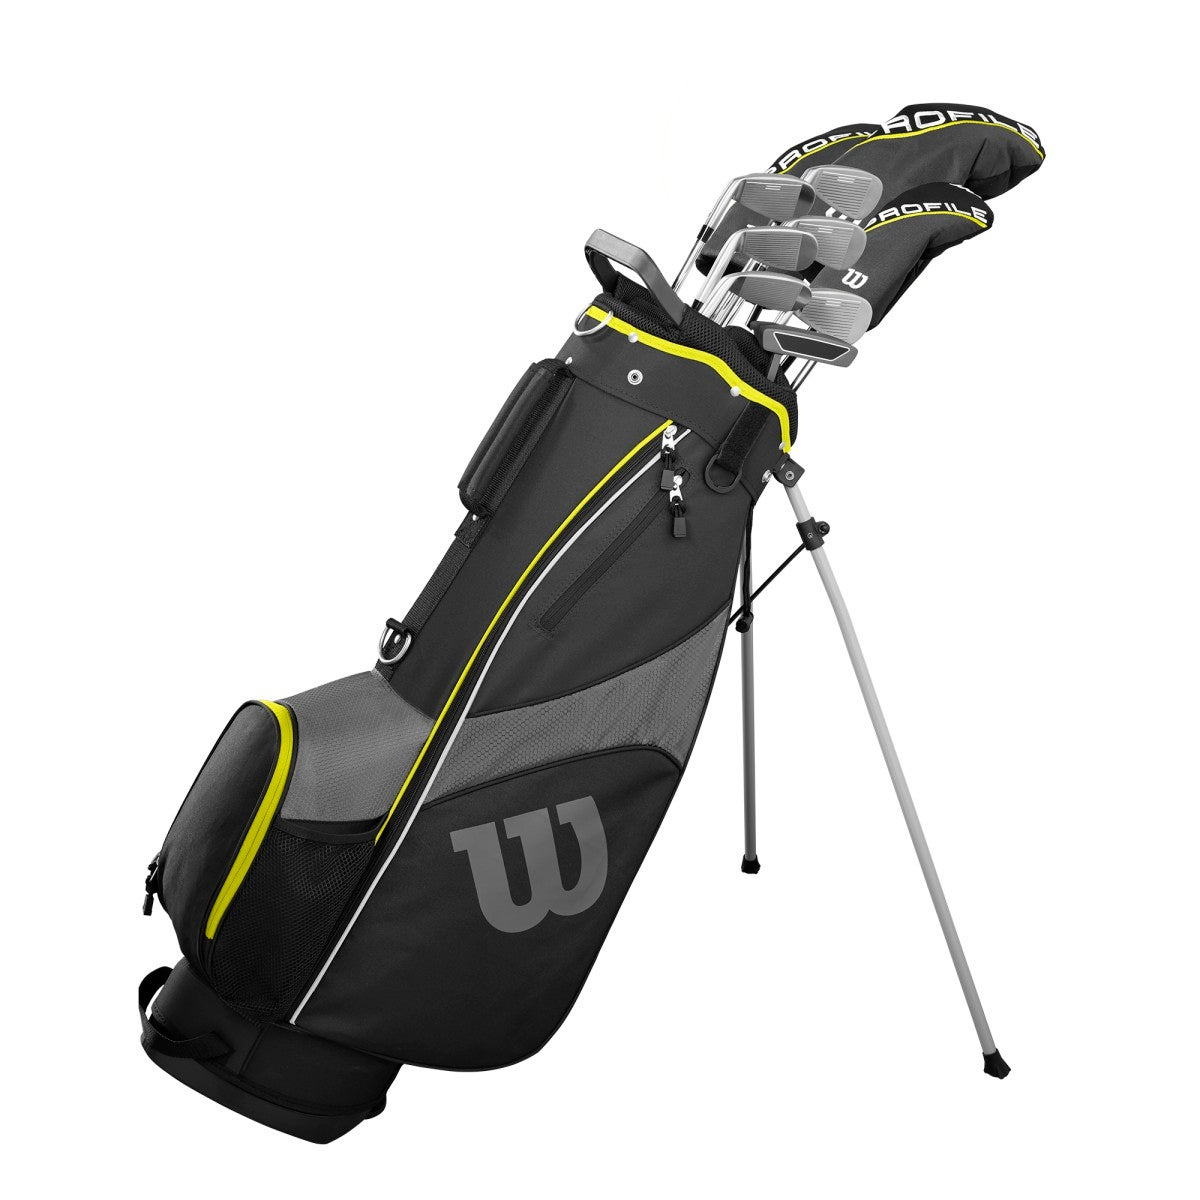 Profile SGI Teen Complete Golf Club Set - Carry